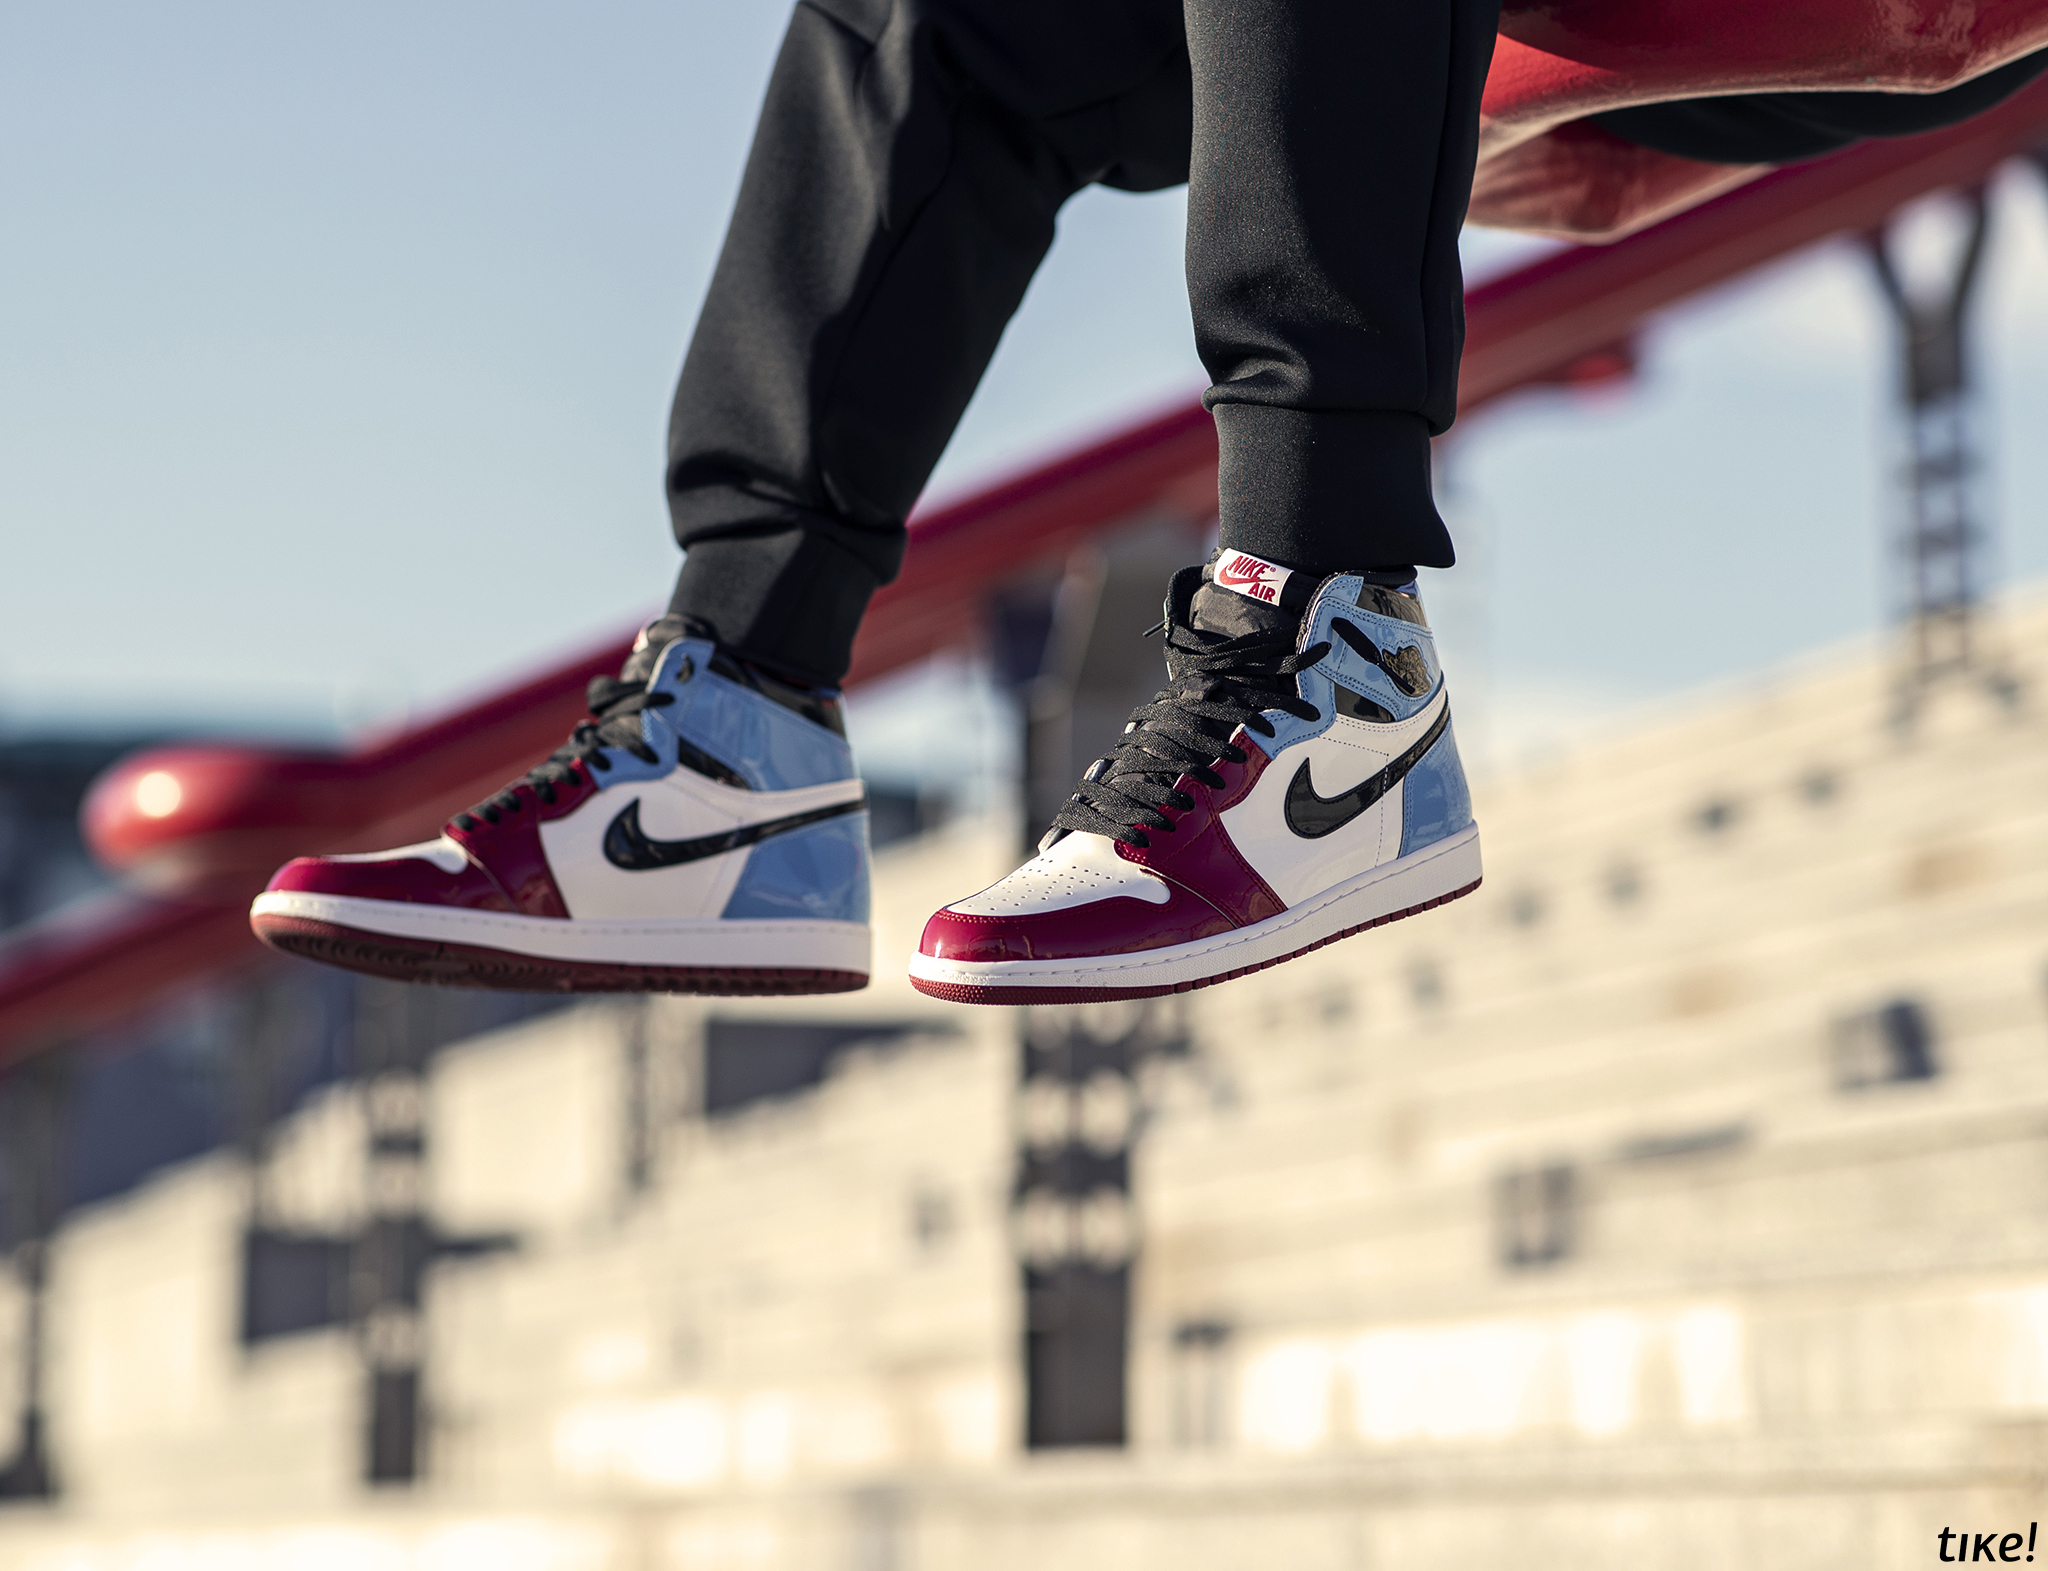 Nike Air Jordan 1 High OG Fearless